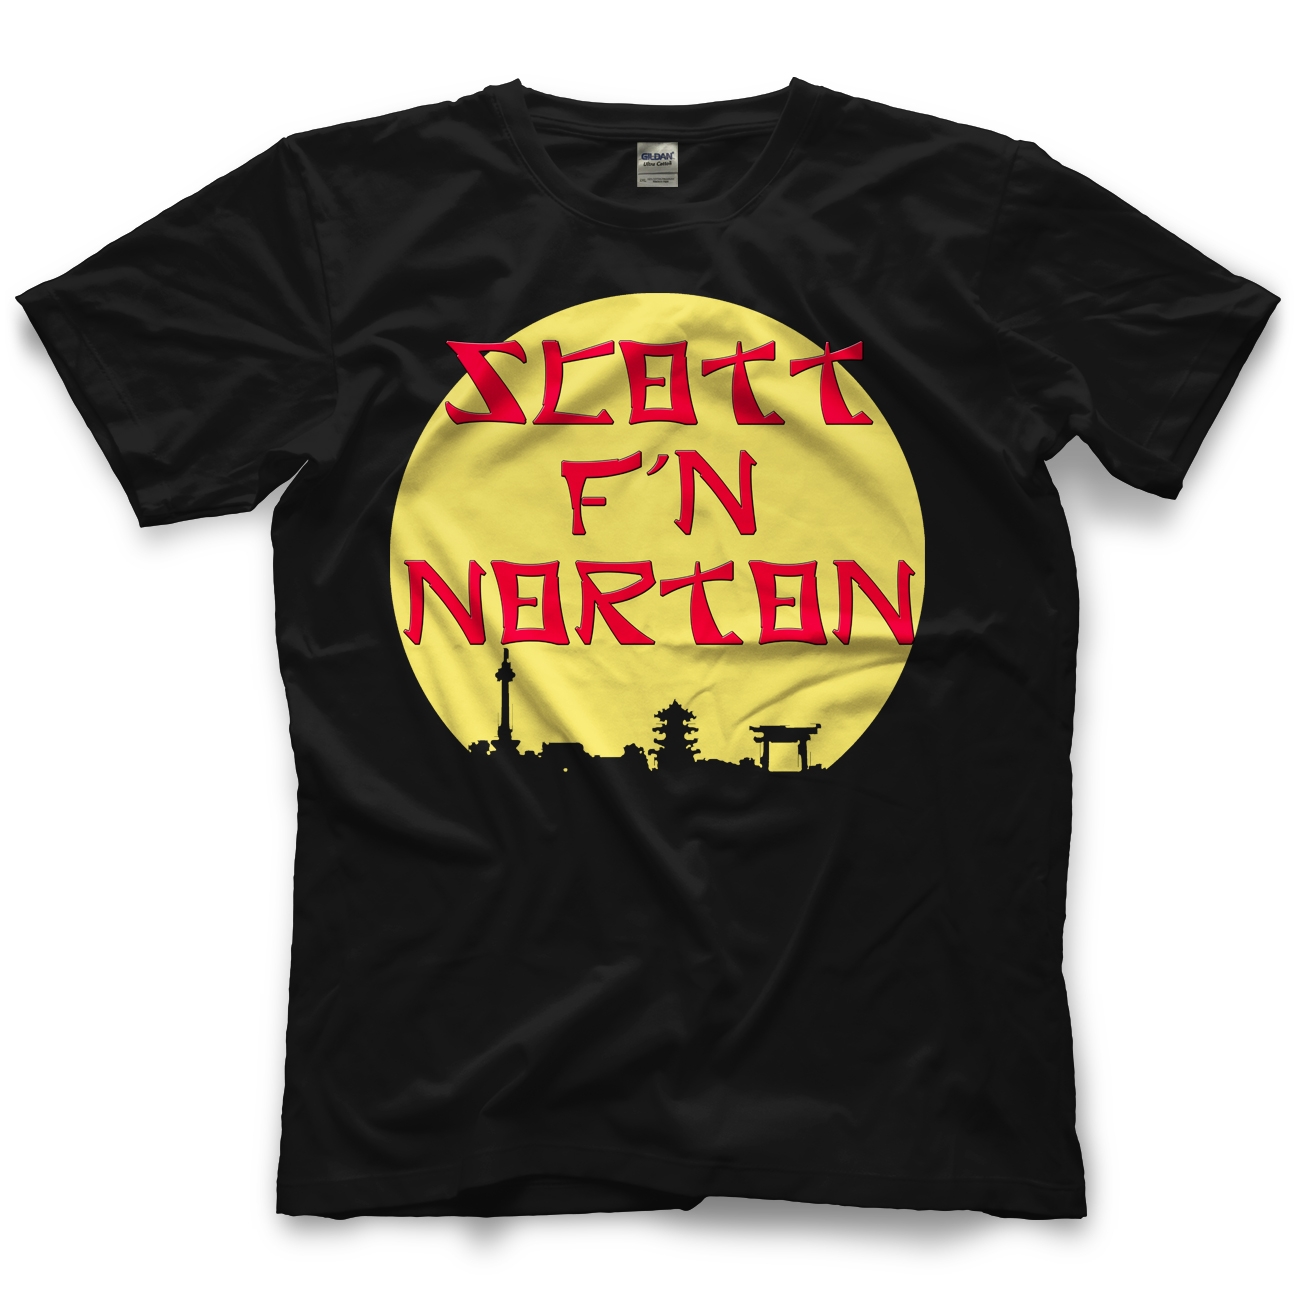 Scott F'N Norton T-shirt